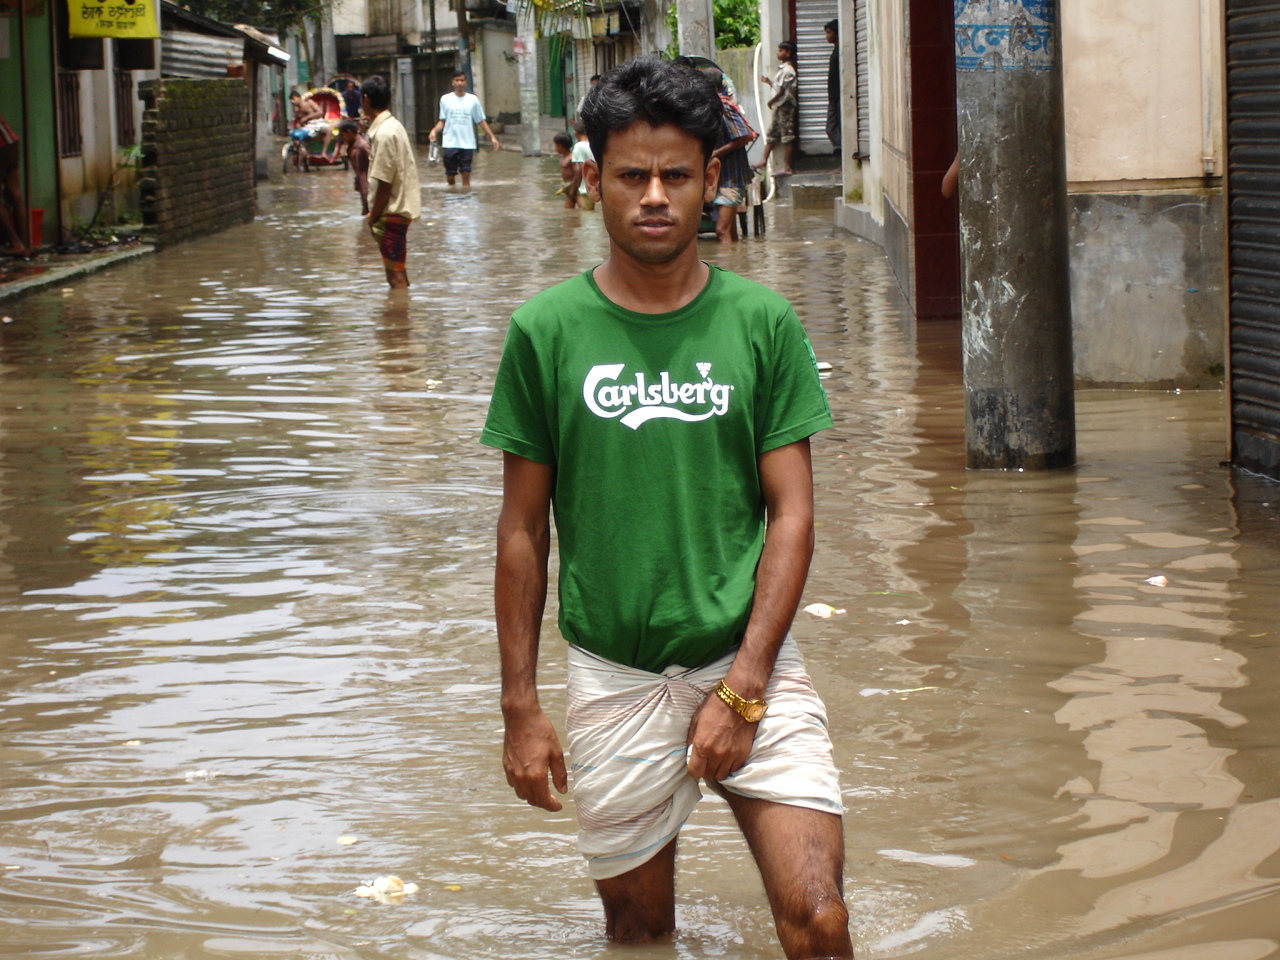 A flood-affected street in Kalachadpur, Dhaka, the Bangladeshi capital. Each year large portions of the city are flooded during the annual monsoon.